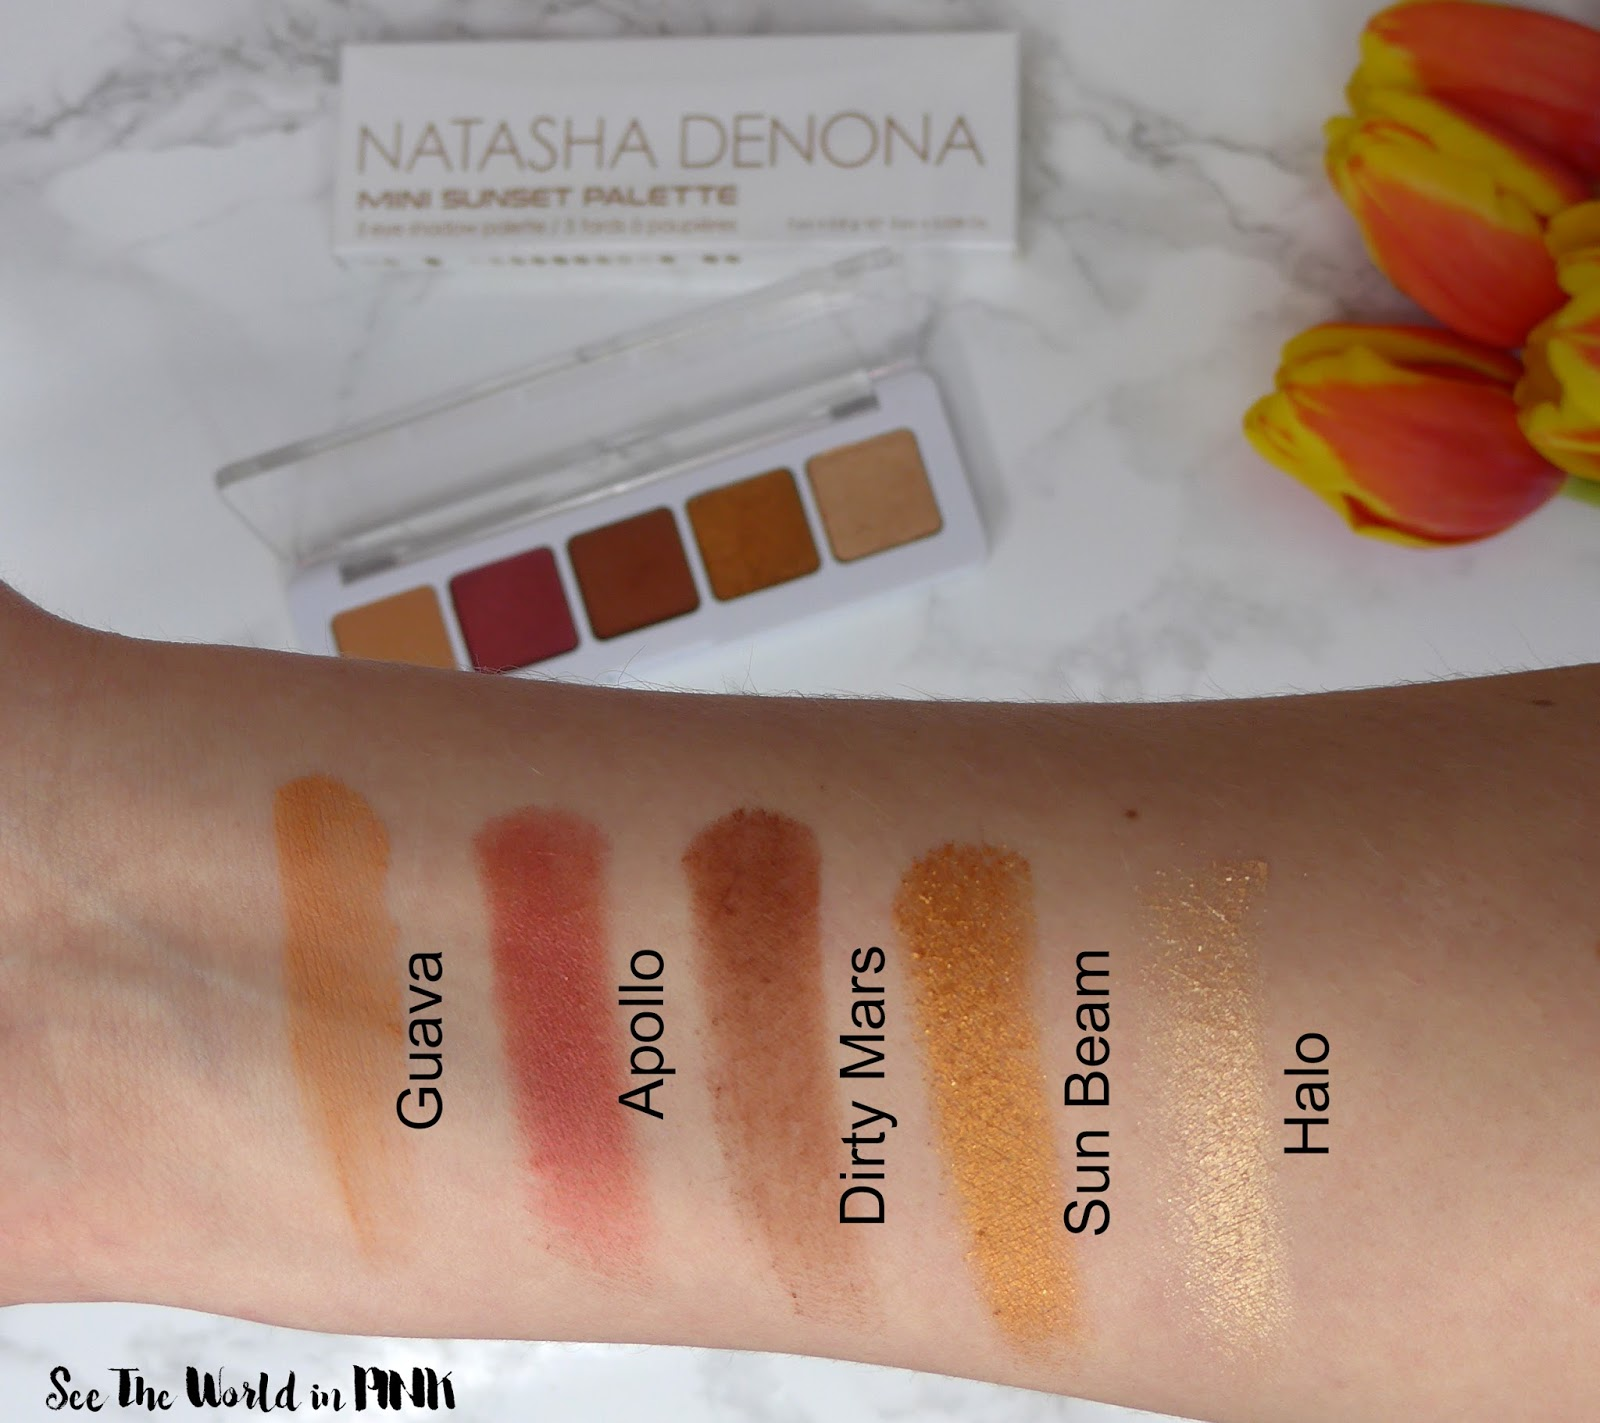 Natasha Denona Mini Sunset Eyeshadow Palette - Swatches, Makeup Look and Review!